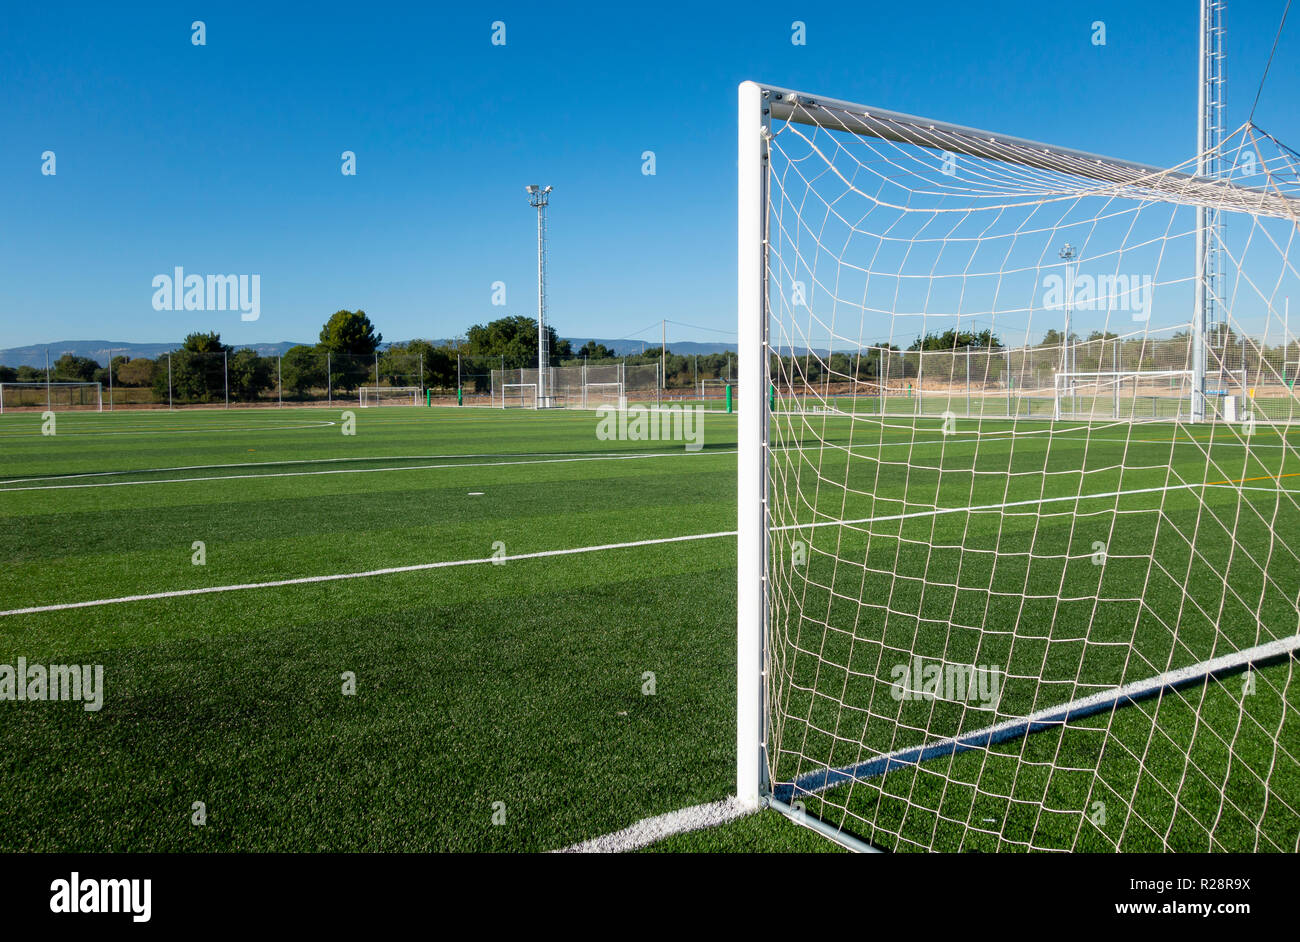 b8ae6df0d Soccer Field Big Stock Photos & Soccer Field Big Stock Images - Alamy